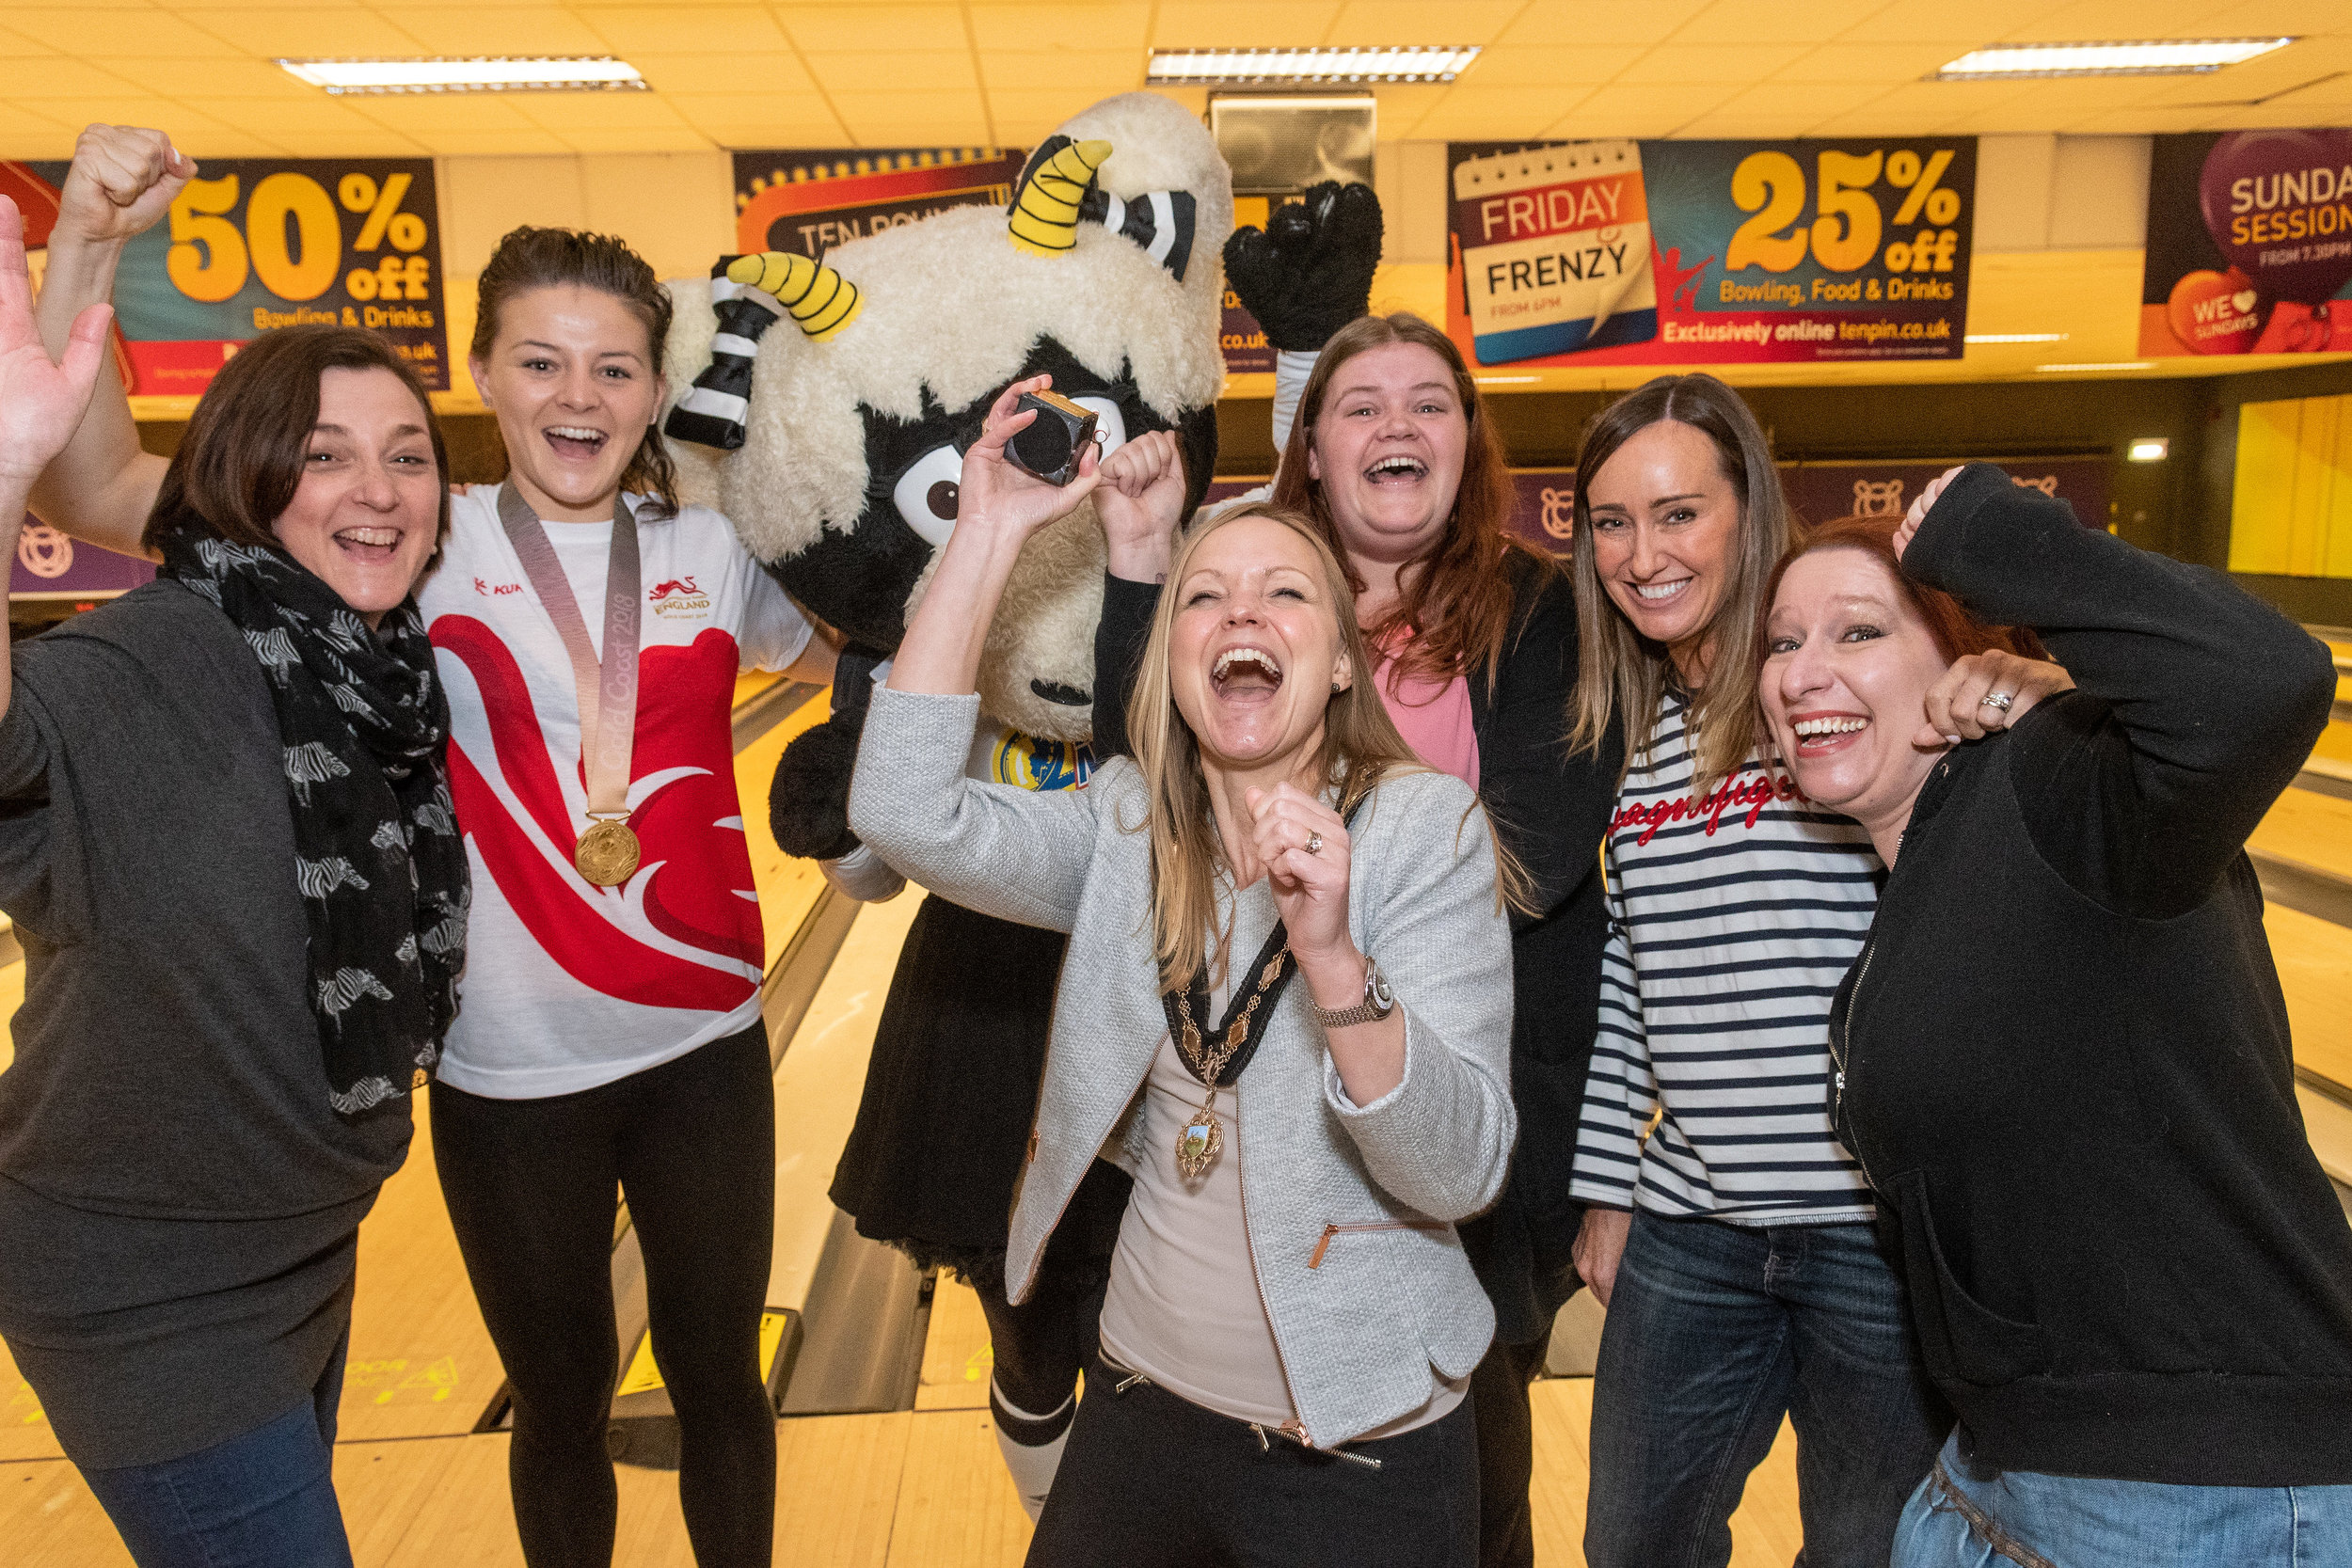 Juliette Whitby, wife of Mayor councillor John Whitby, celebrates her victory following the Mayor v Mayoress charity event at Tenpin Derby with Commonwealth gold medalist Sandy Ryan and Derby County mascot Ewie, plus members from charity Derbyshire Children's Holiday Home in Skegness. Penguin PR: Public relations, media and communications